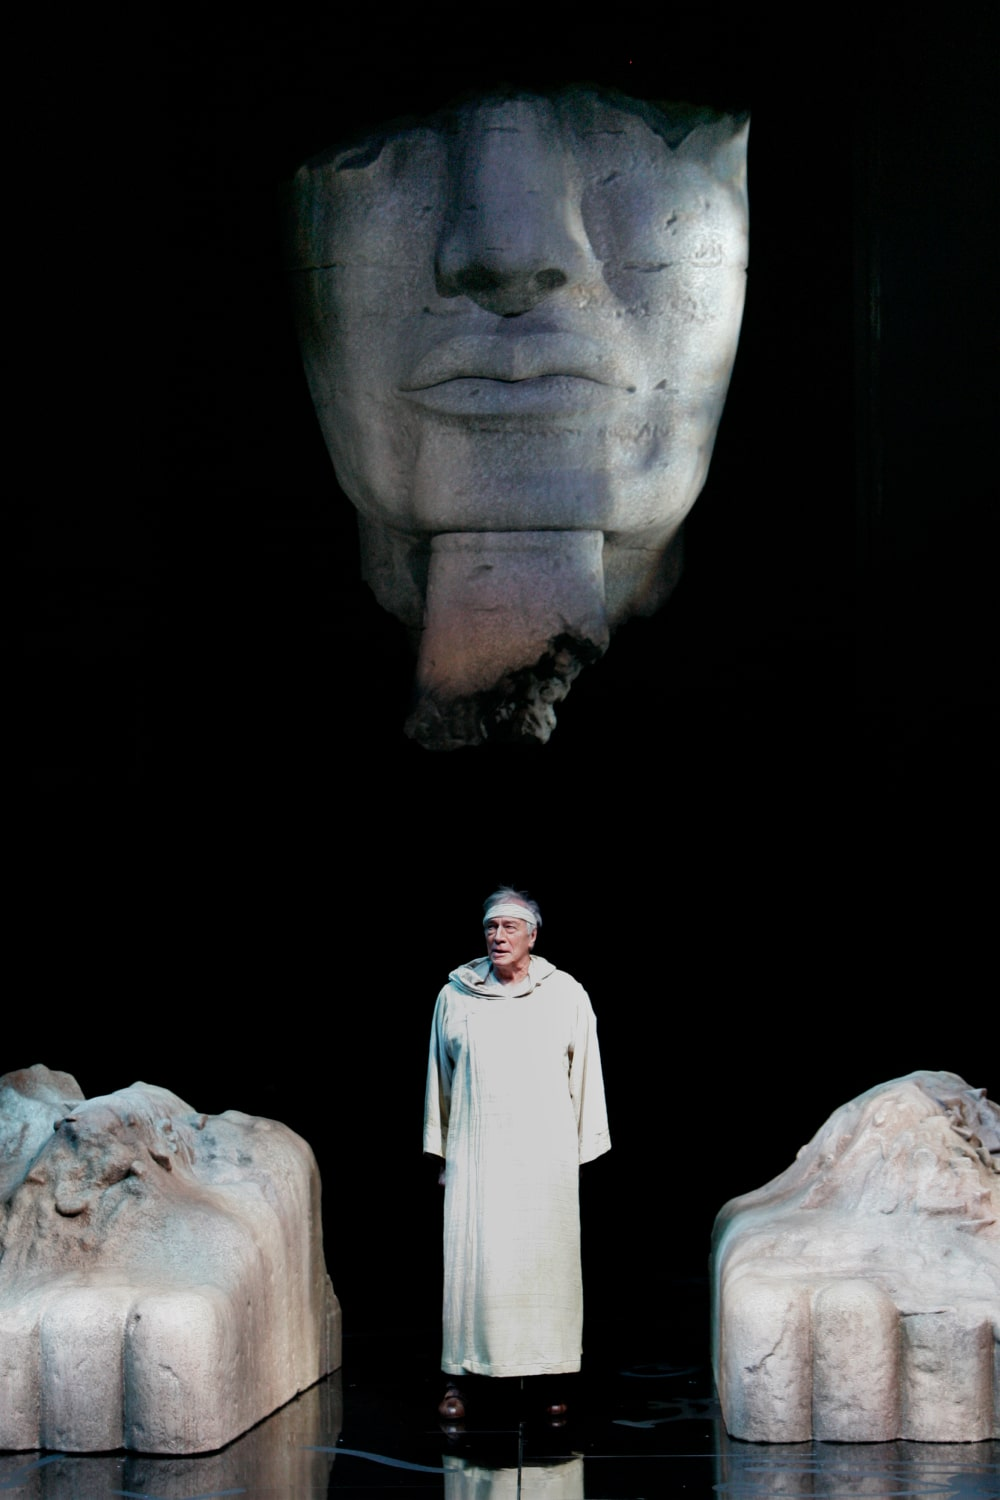 Old man in white robe stands starkly light in front of Sphinx.